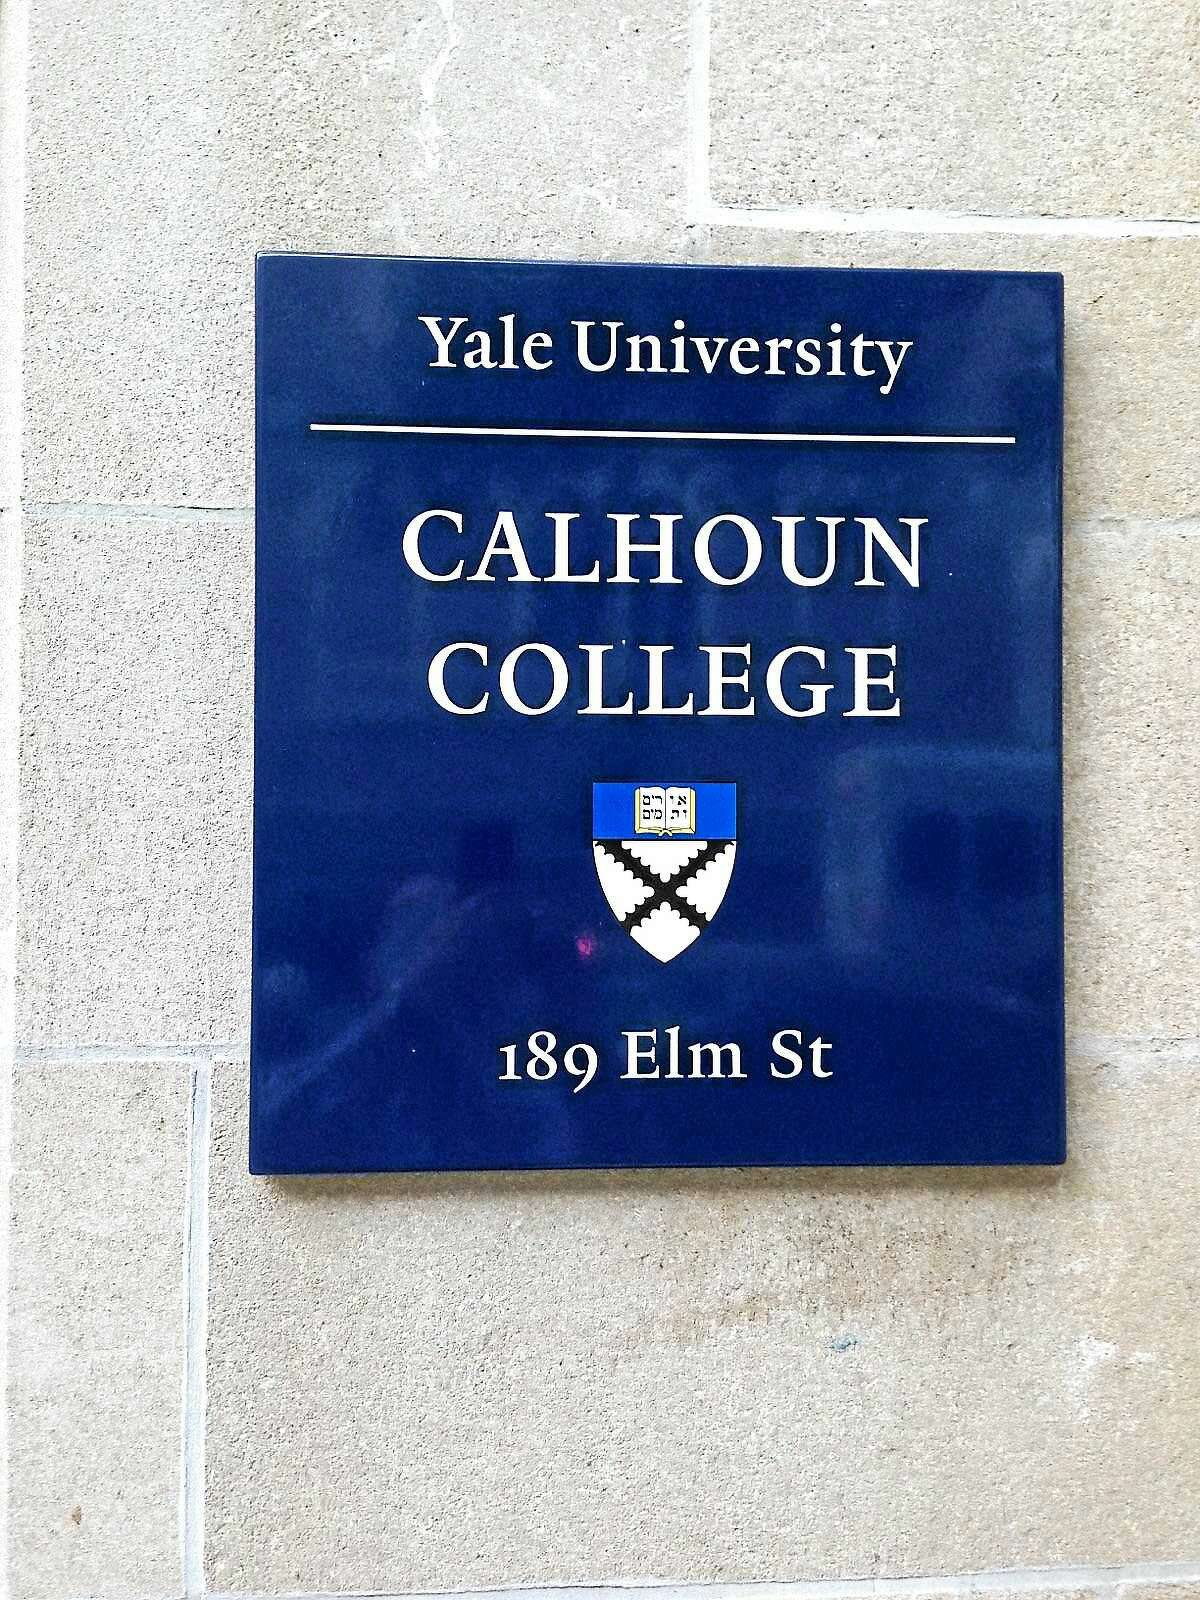 Ed Stannard — New Haven Register The sign at Calhoun College at Yale University in New Haven